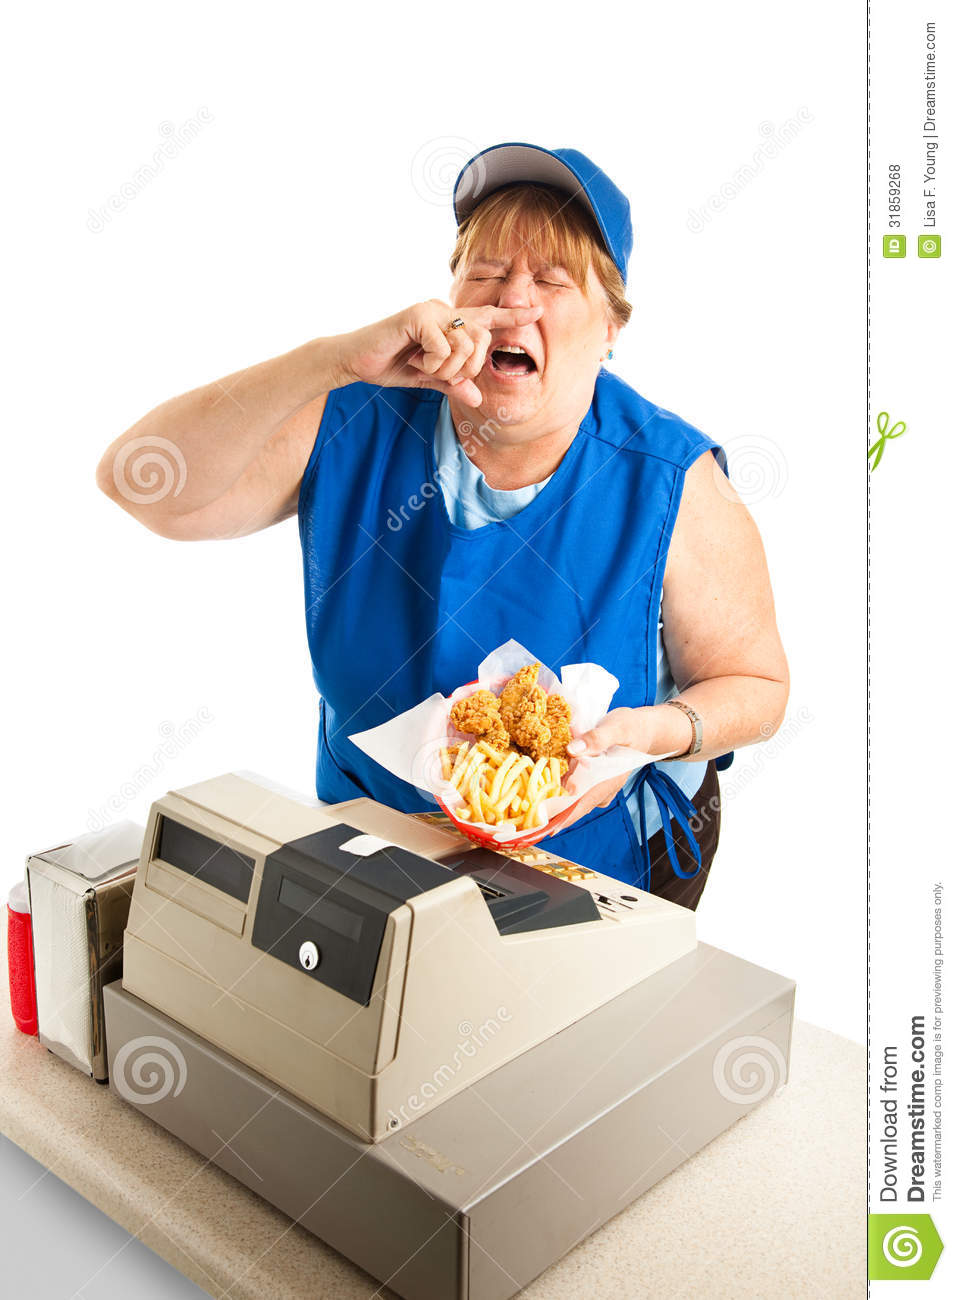 fast food worker sneezing on meal royalty free stock Sick Face Clip Art picture of sick person clipart